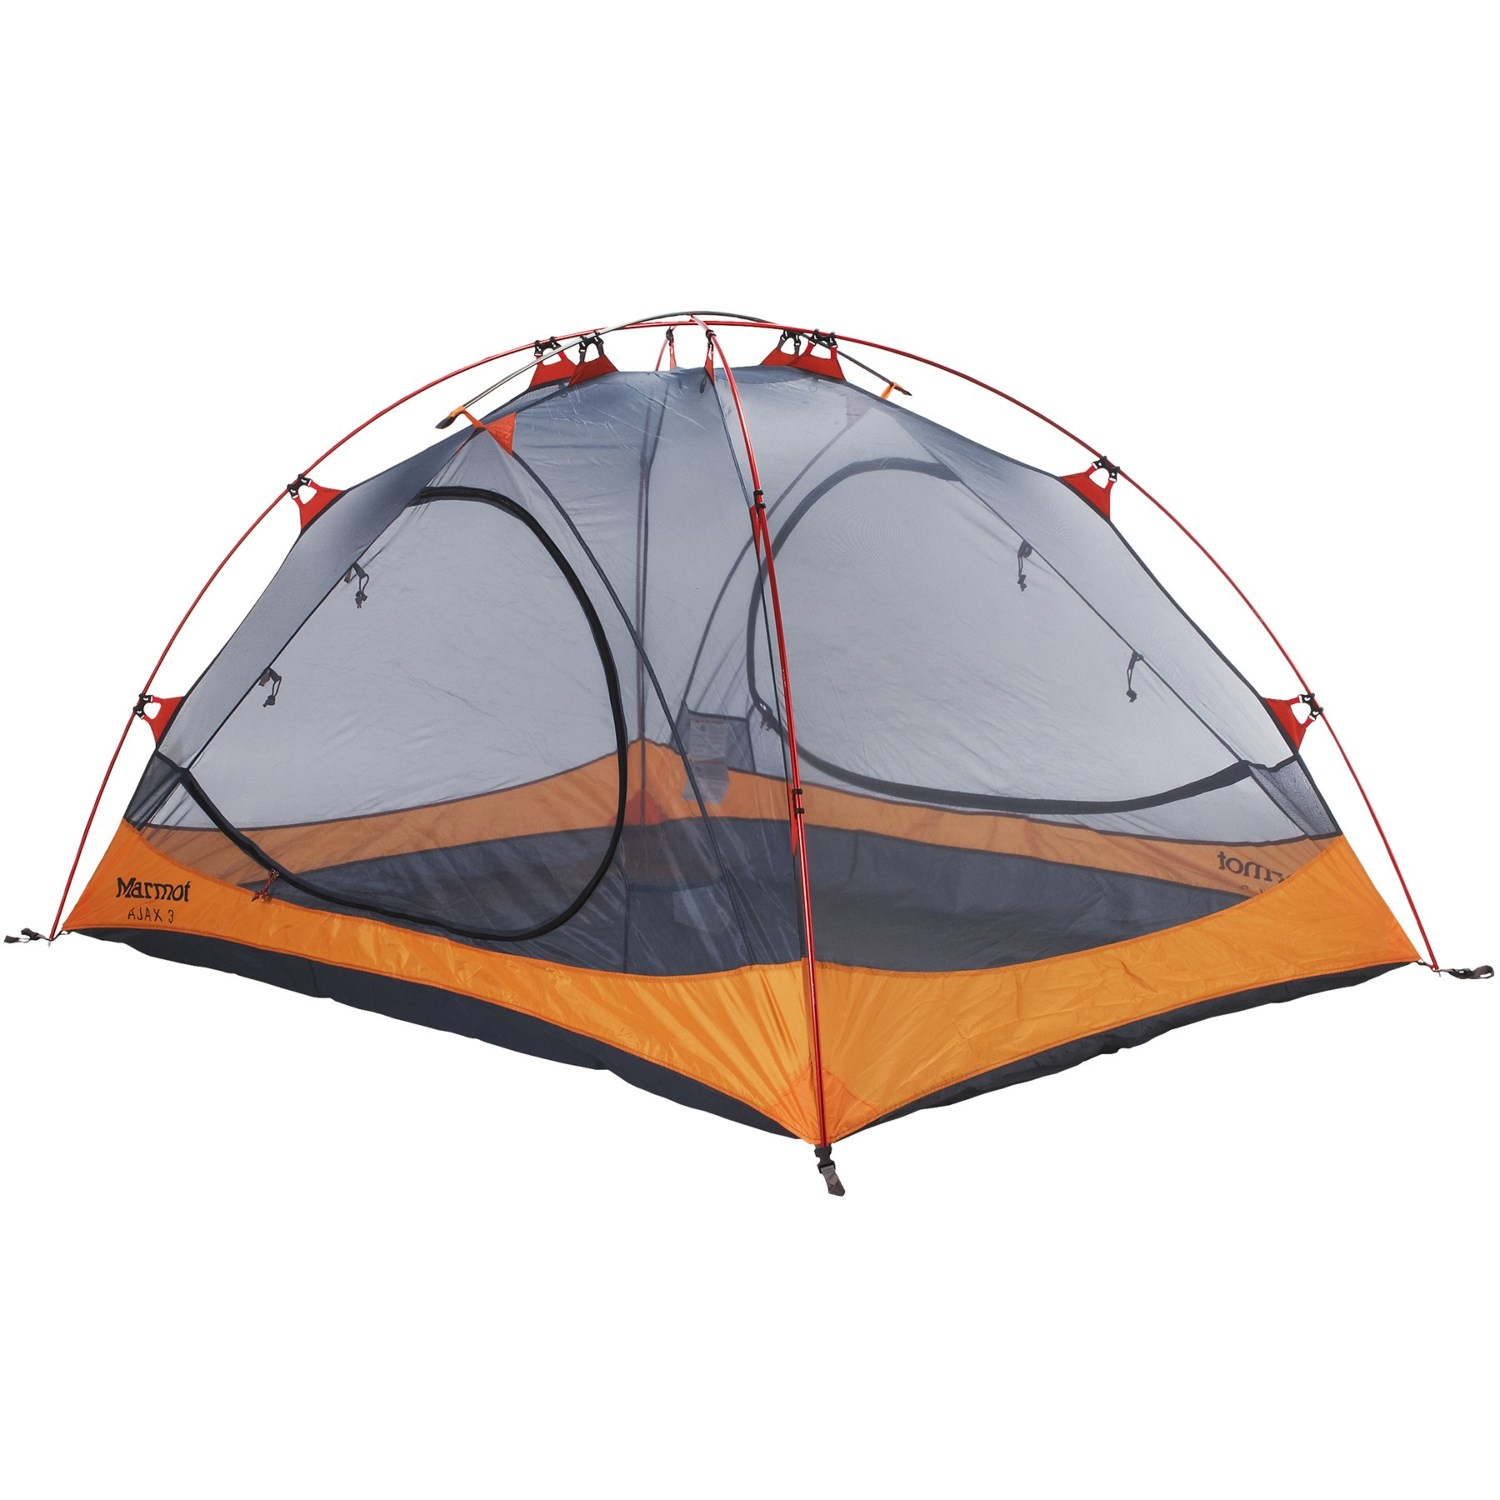 Marmot Ajax 3 Tent - 3-Person 3-Season  sc 1 st  Sierra Trading Post & Customer Reviews of Marmot Ajax 3 Tent - 3-Person 3-Season